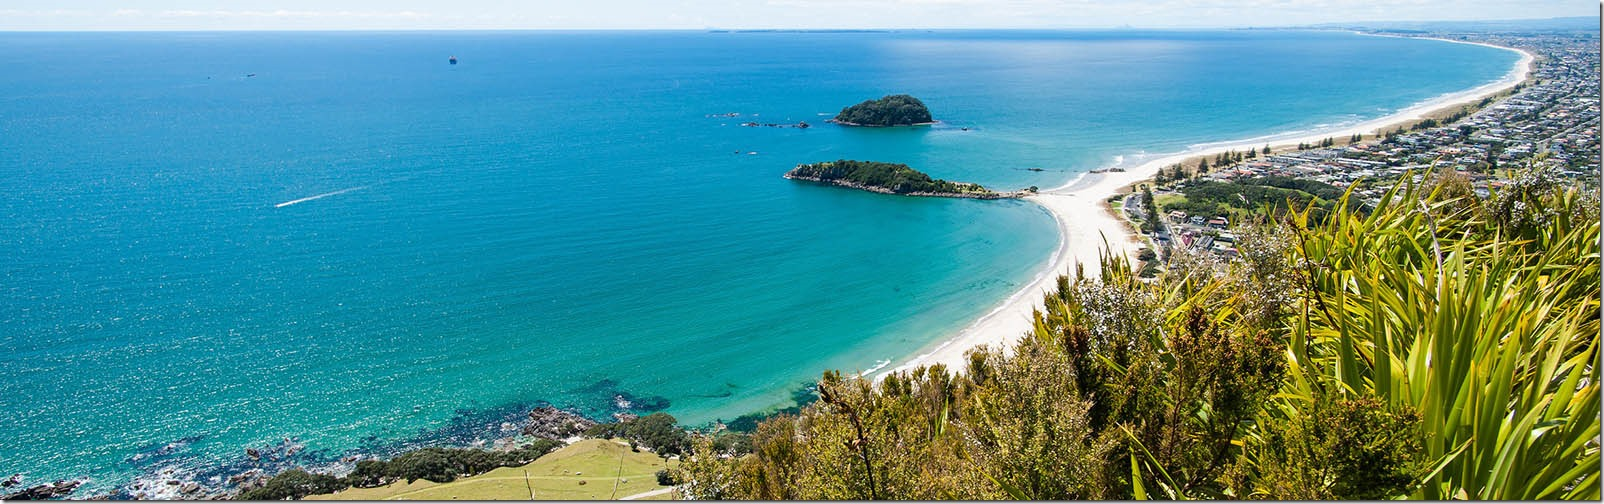 Bay of Plenty on New Zealand's eastern coast